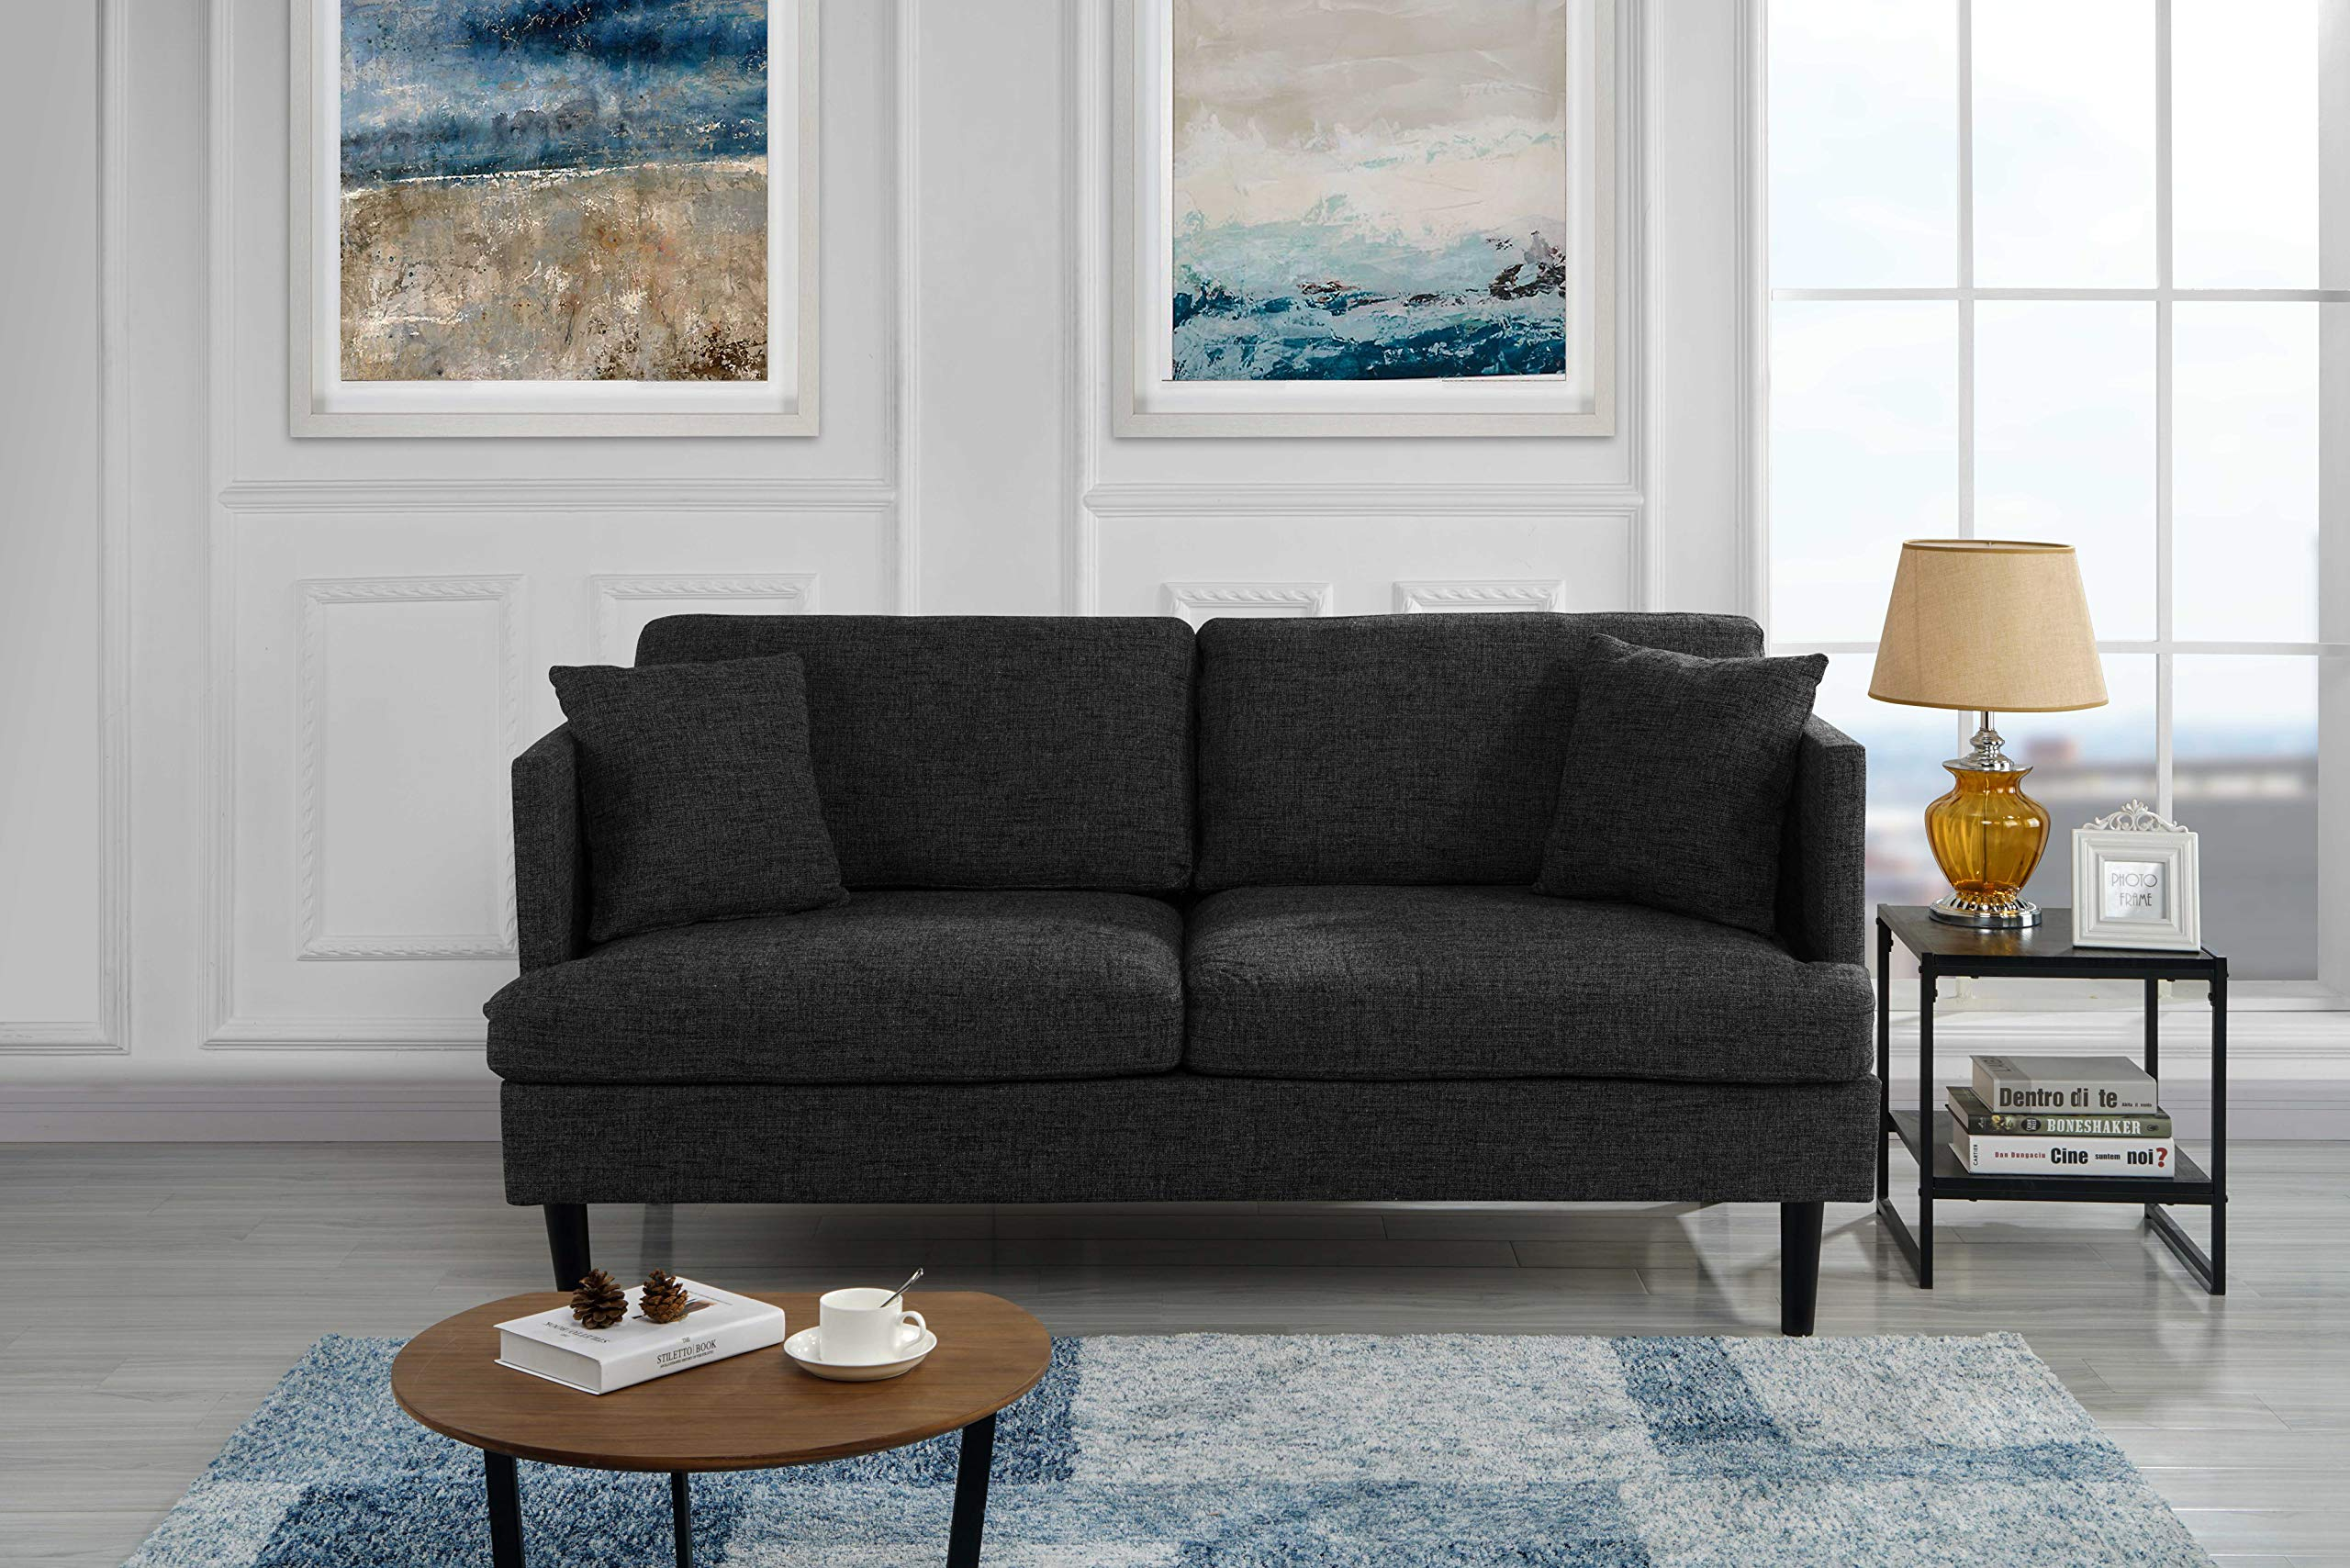 Modern Upholstered Loveseat Sofa/Couch (Ash Grey) - Mid Century style modern living room loveseat couch with decorative pillows and wooden legs. Square frame with club-style armrests. Upholstered in woven marbled soft linen fabric with 2 additional pillows in the same fabric. The perfect size sofa for a studio apartment and or a guest room. Comfortable cushions filled with high density foam. - sofas-couches, living-room-furniture, living-room - 91J9FL3l9AL -